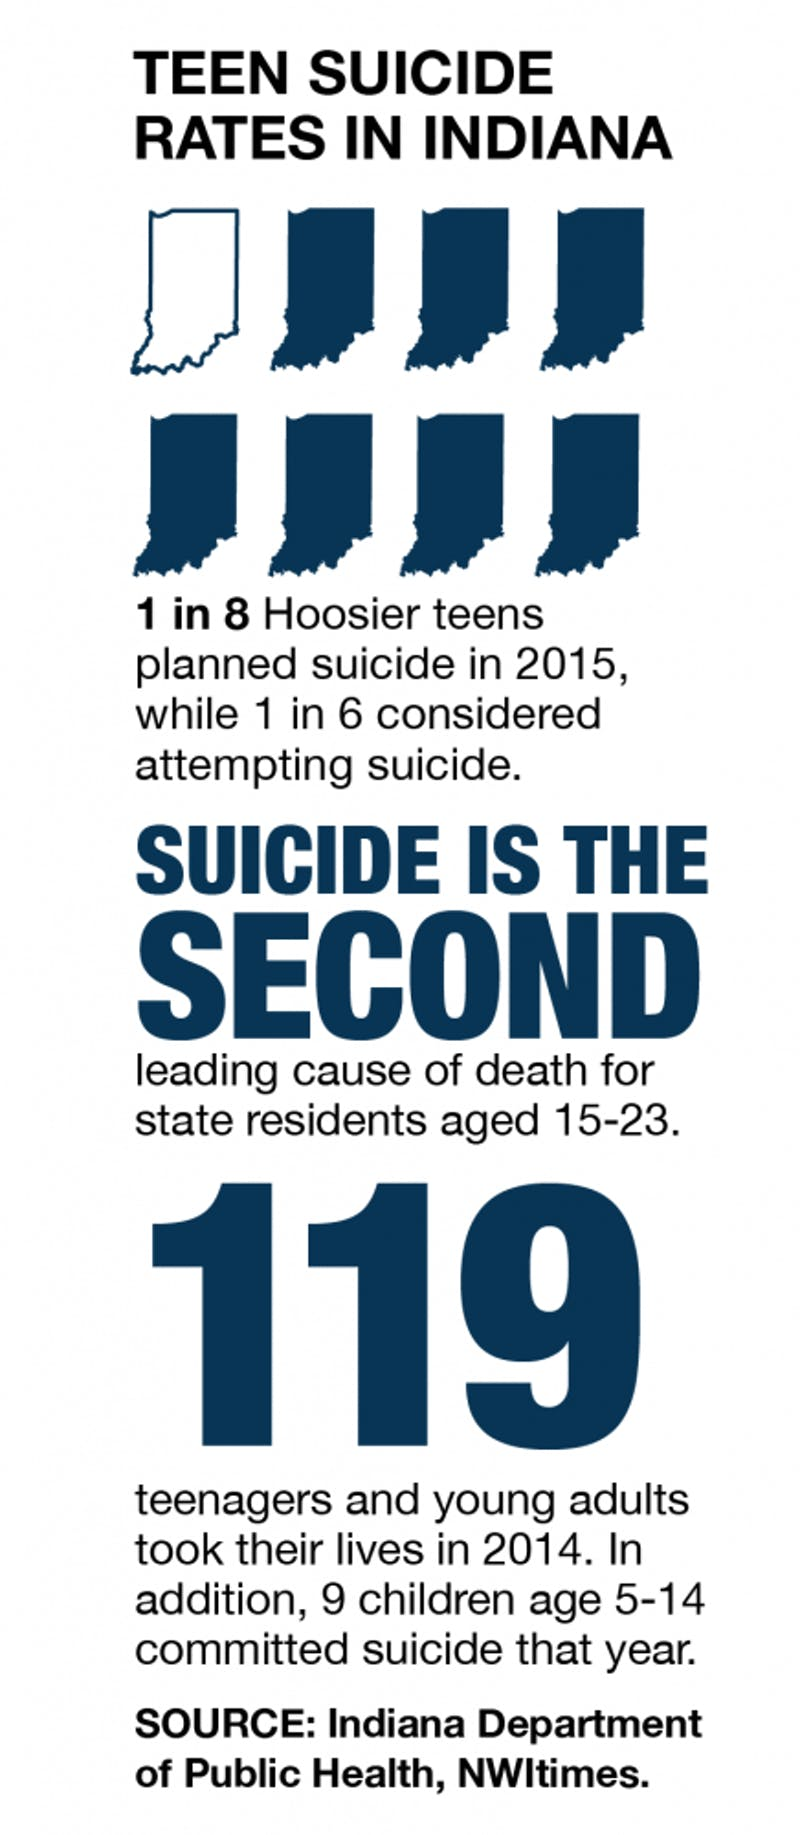 Indiana lawmakers propose plan to reduce youth suicide